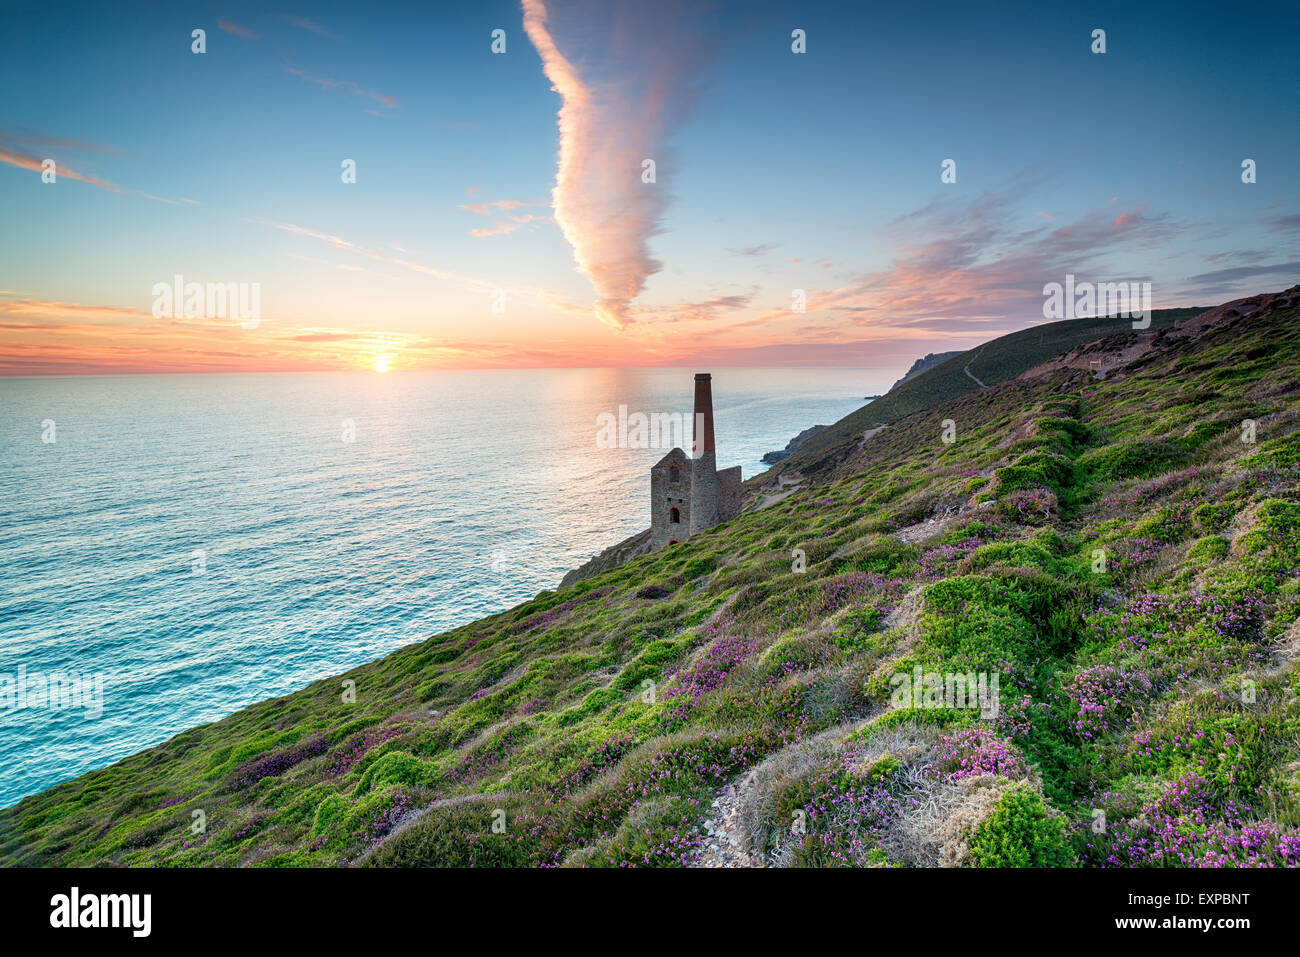 Coucher du soleil sur la côte de Cornwall à St Agnes sur le Towanroath engine house Photo Stock